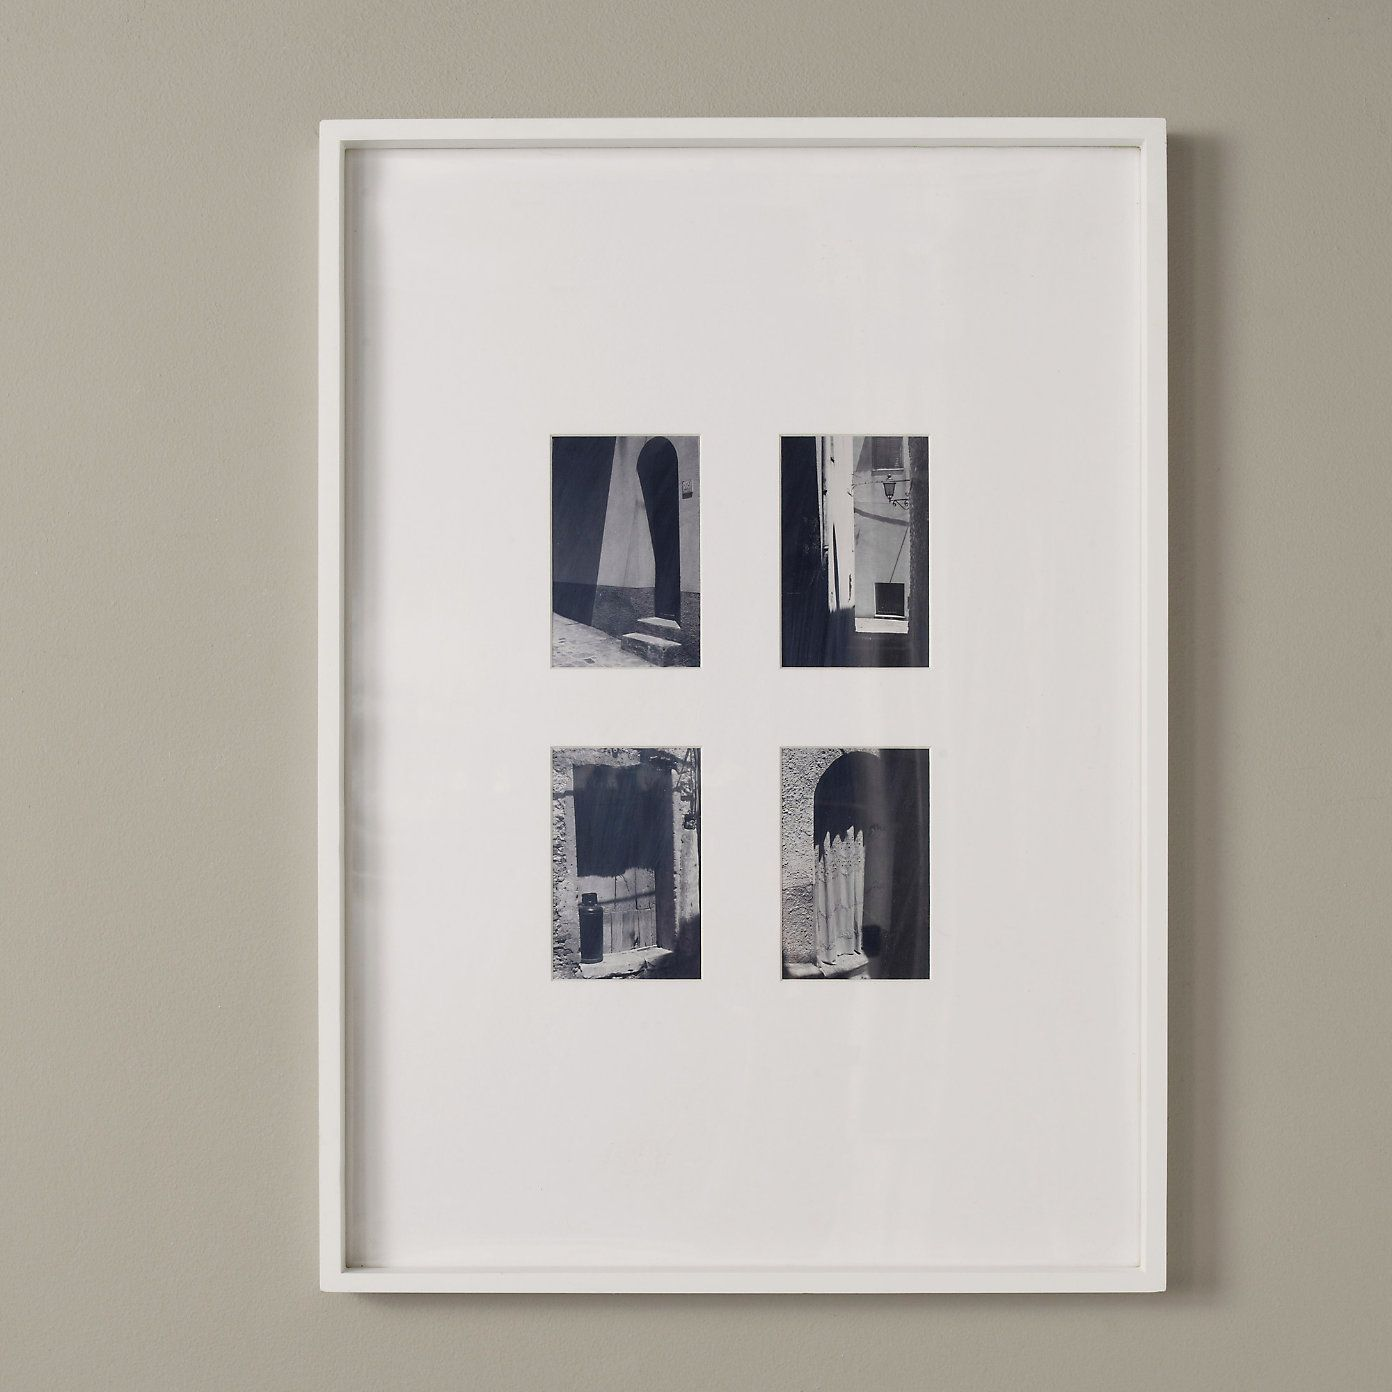 Photo Frames - White & Silver Picture Frames - The